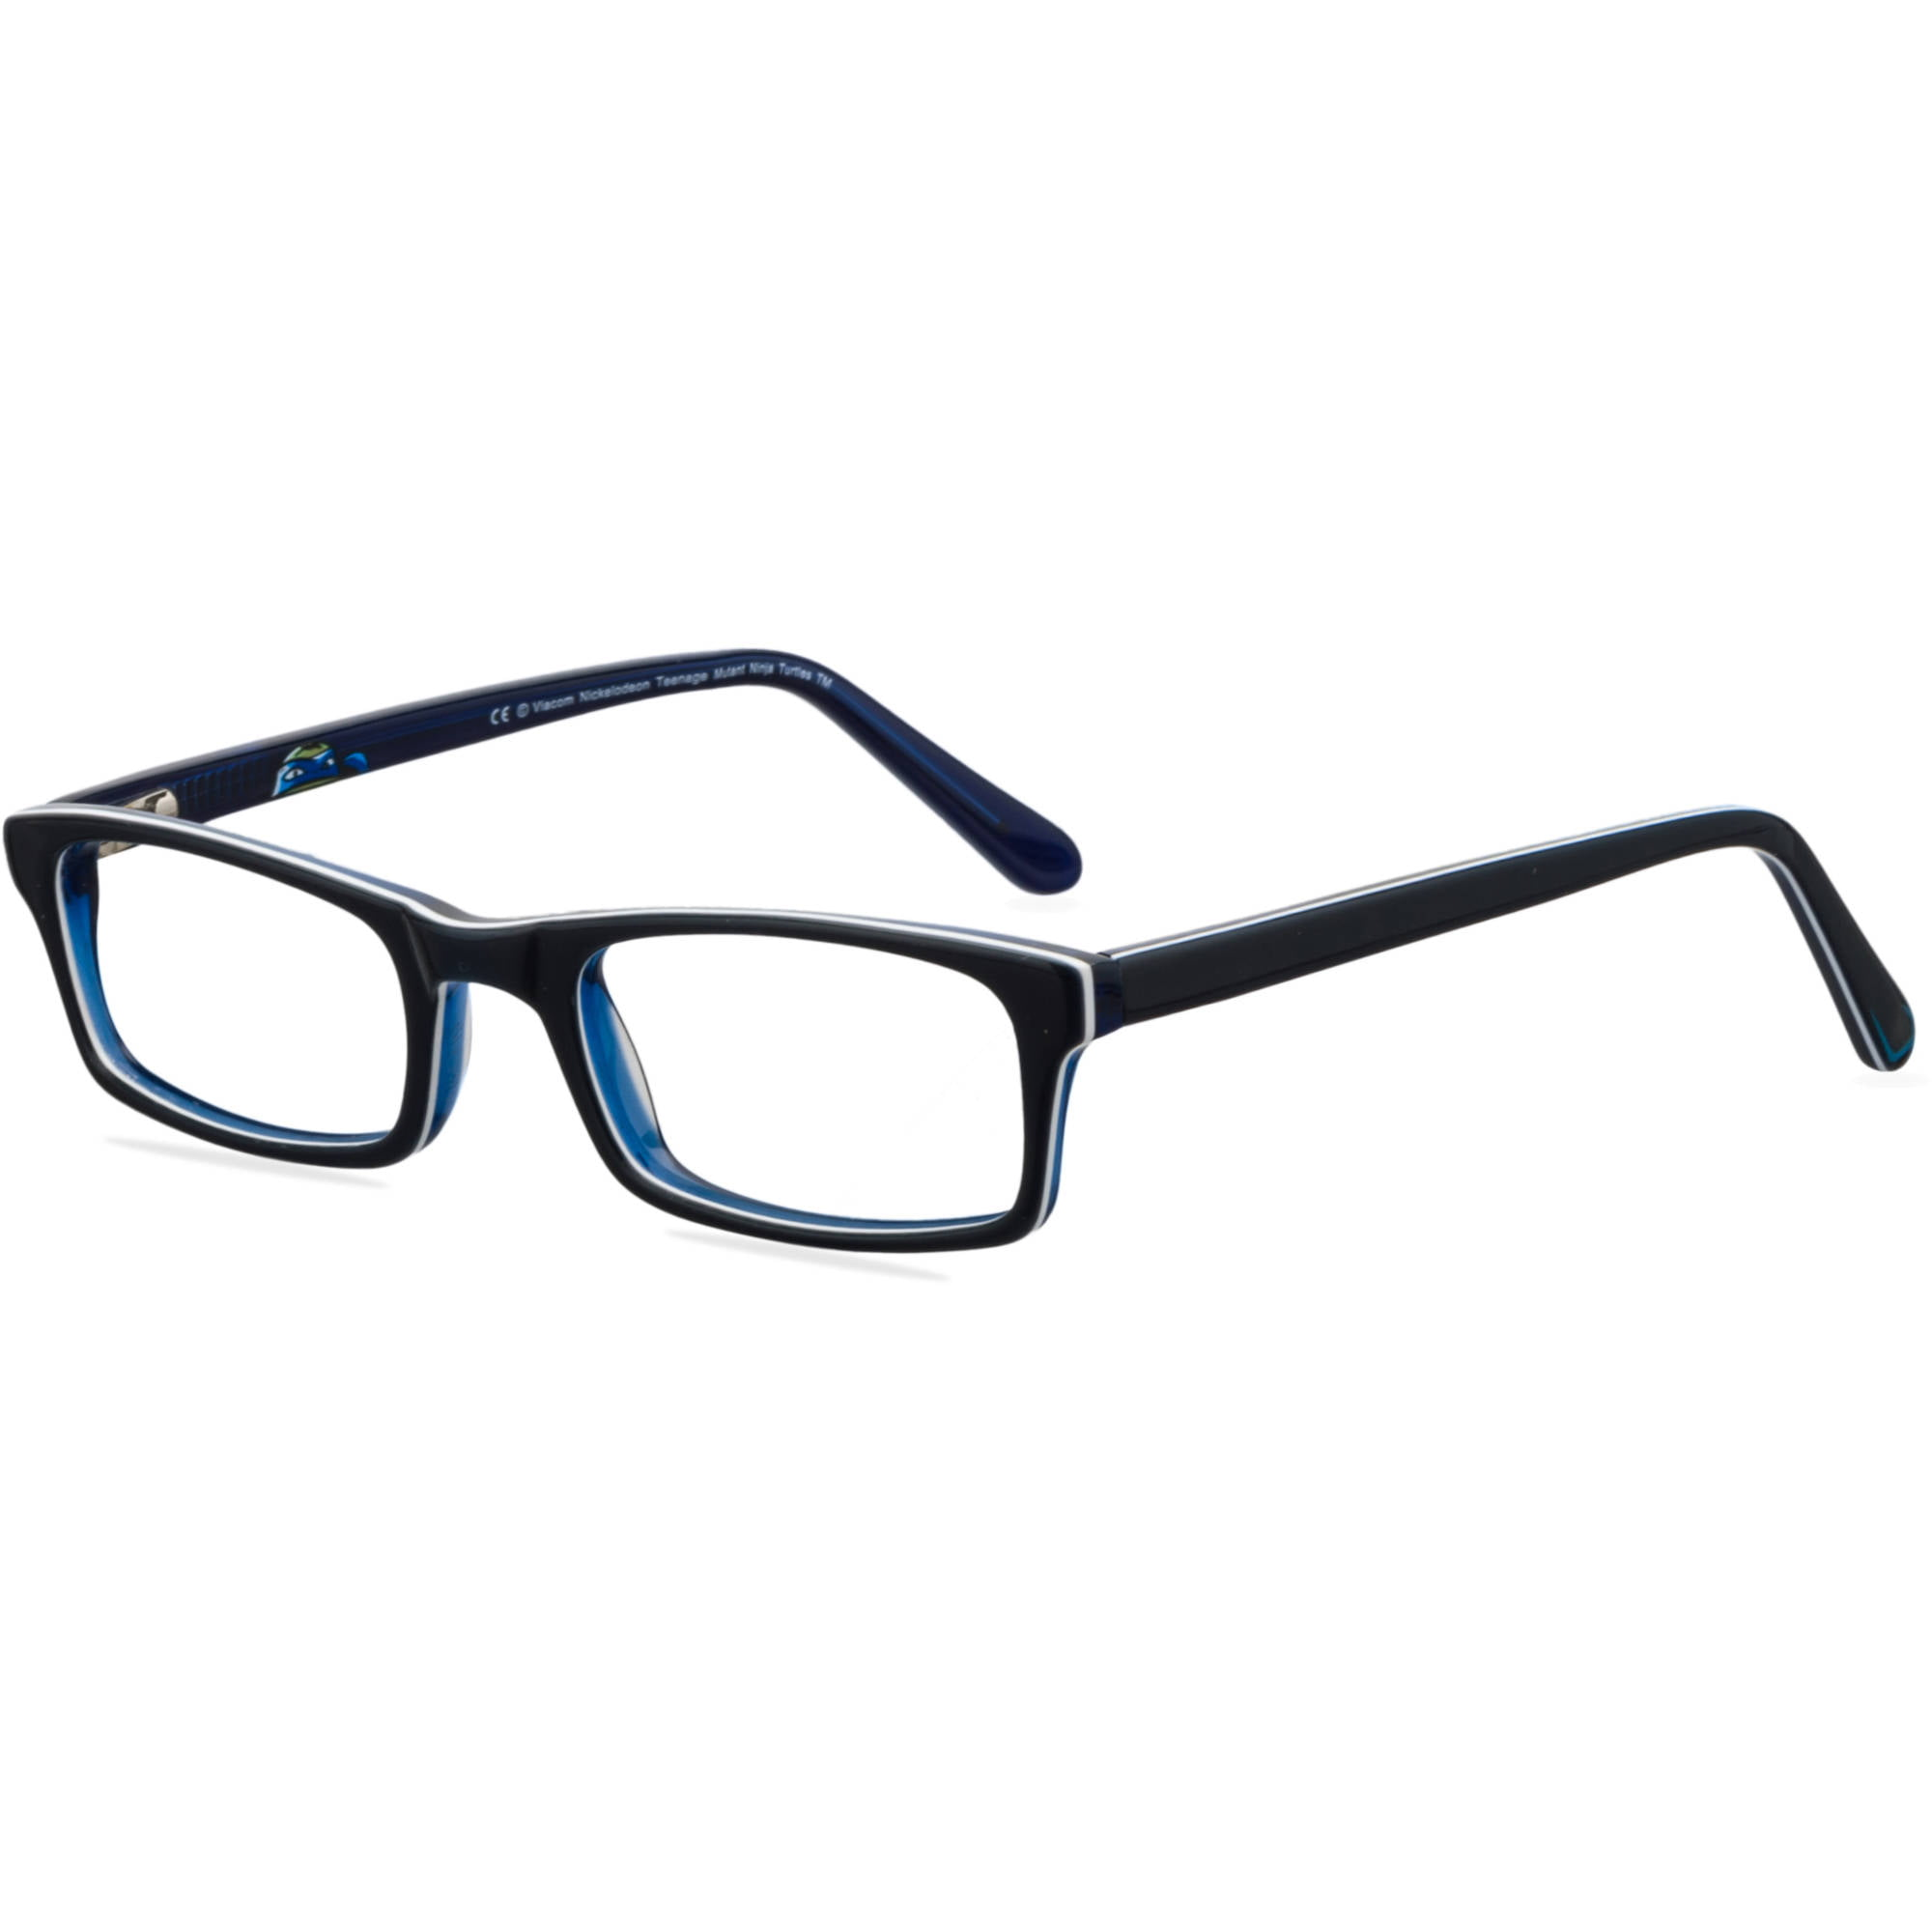 teenage mutant ninja turtles boys prescription glasses tm04 navy walmart com